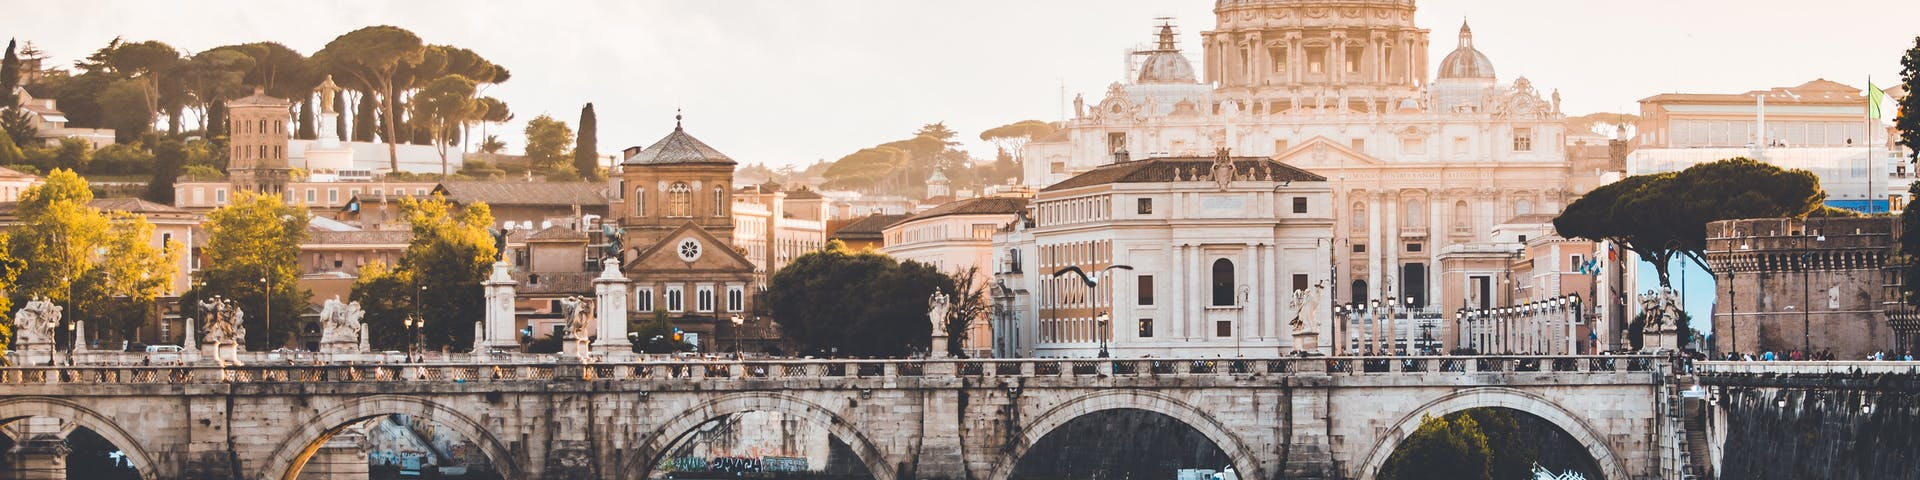 How to Apply to an International University in Italy in 2019